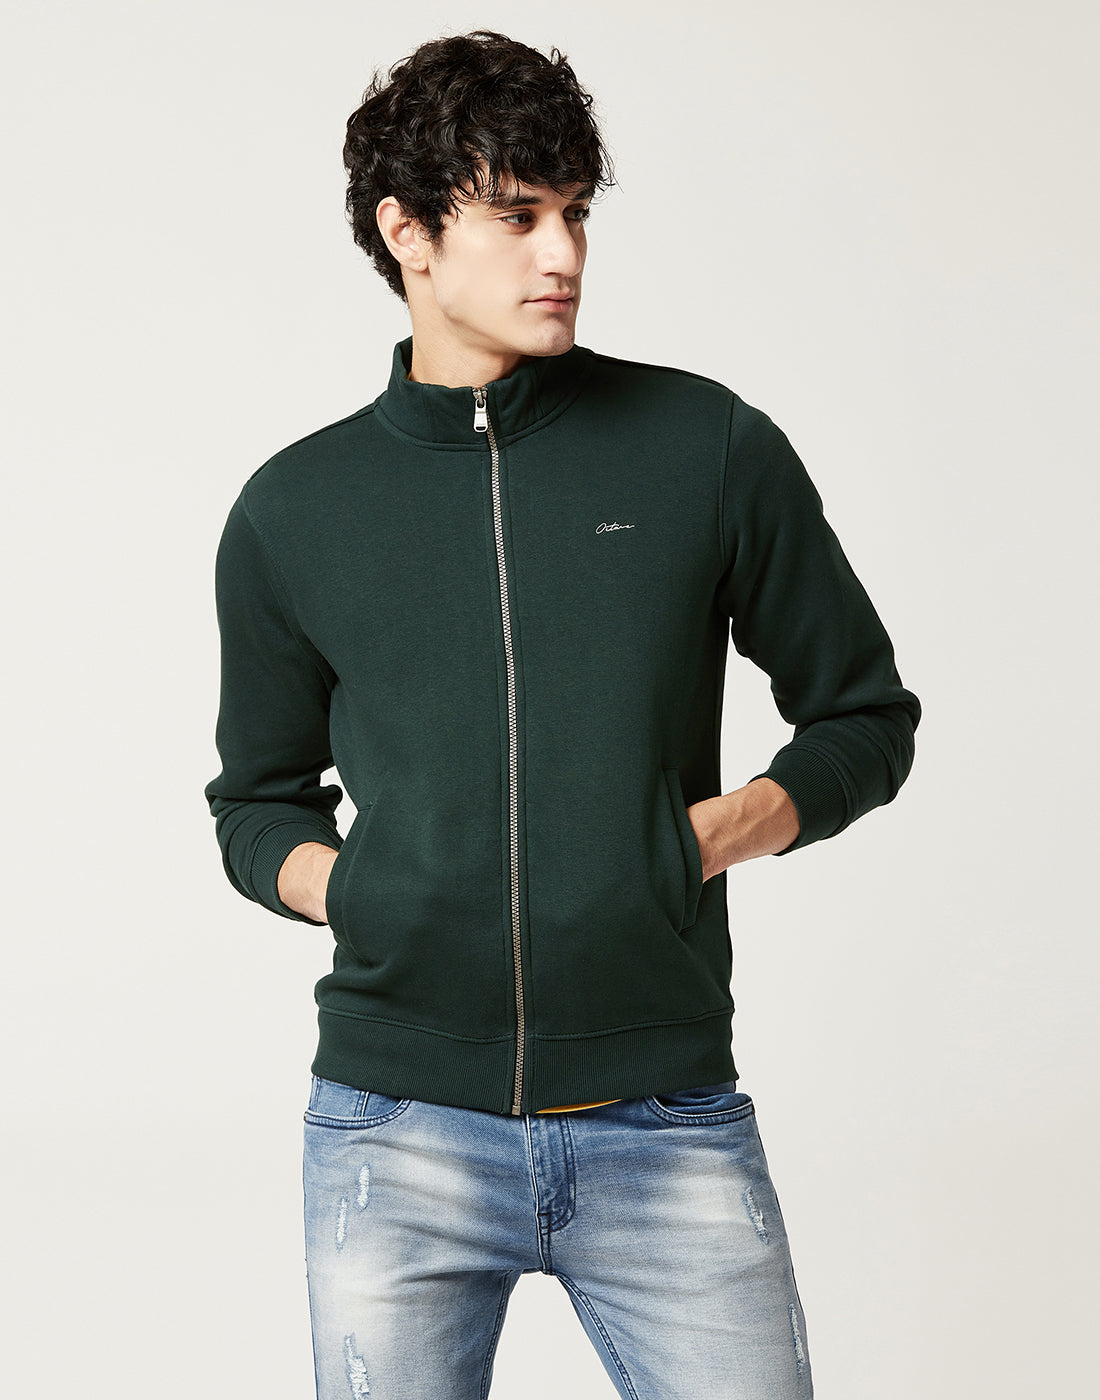 Octave Men Green Sweatshirt